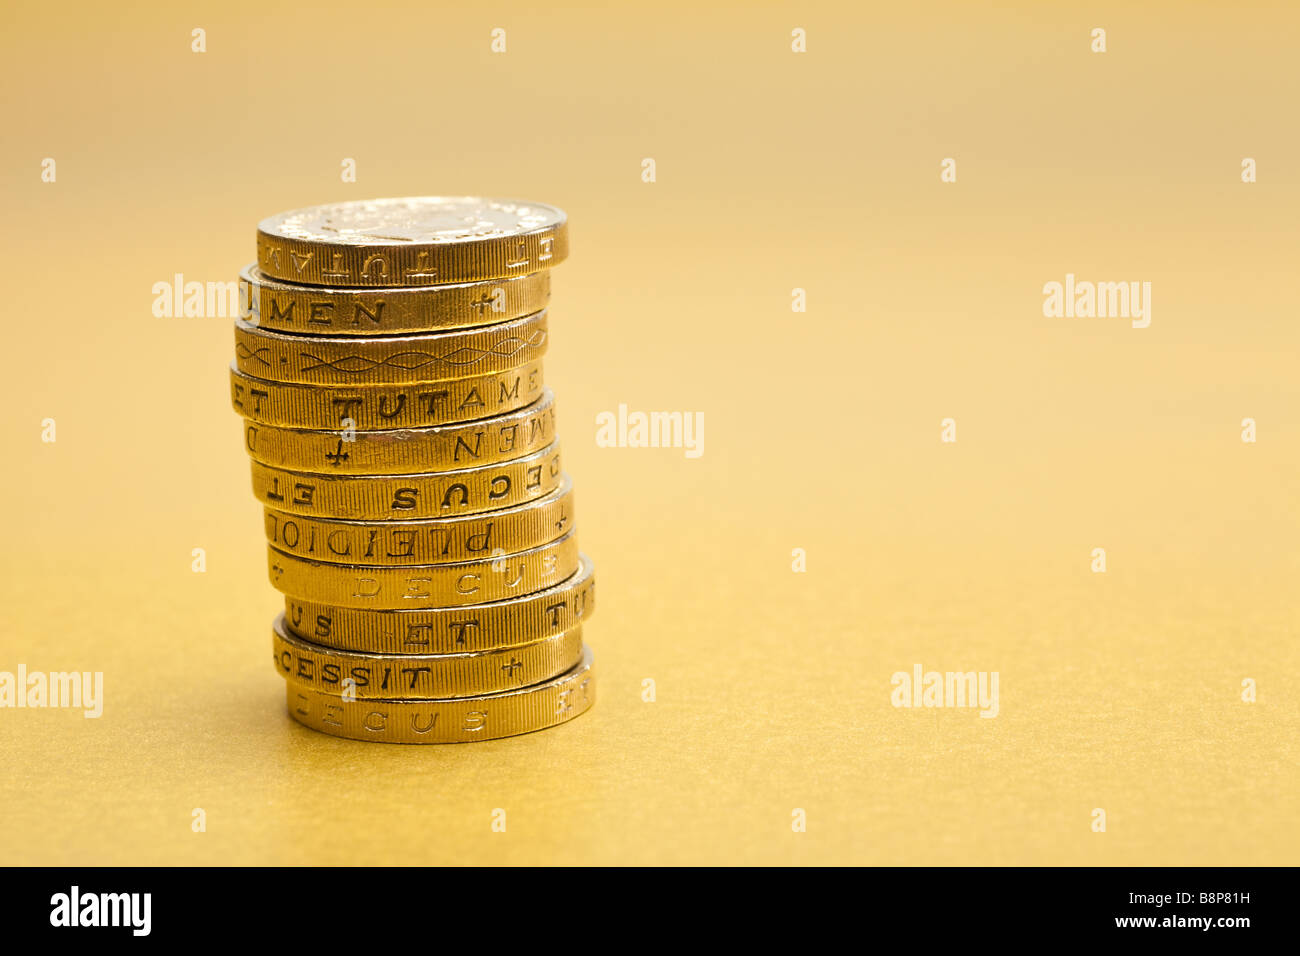 Stack of £1 one pound coins sterling on gold background - Stock Image